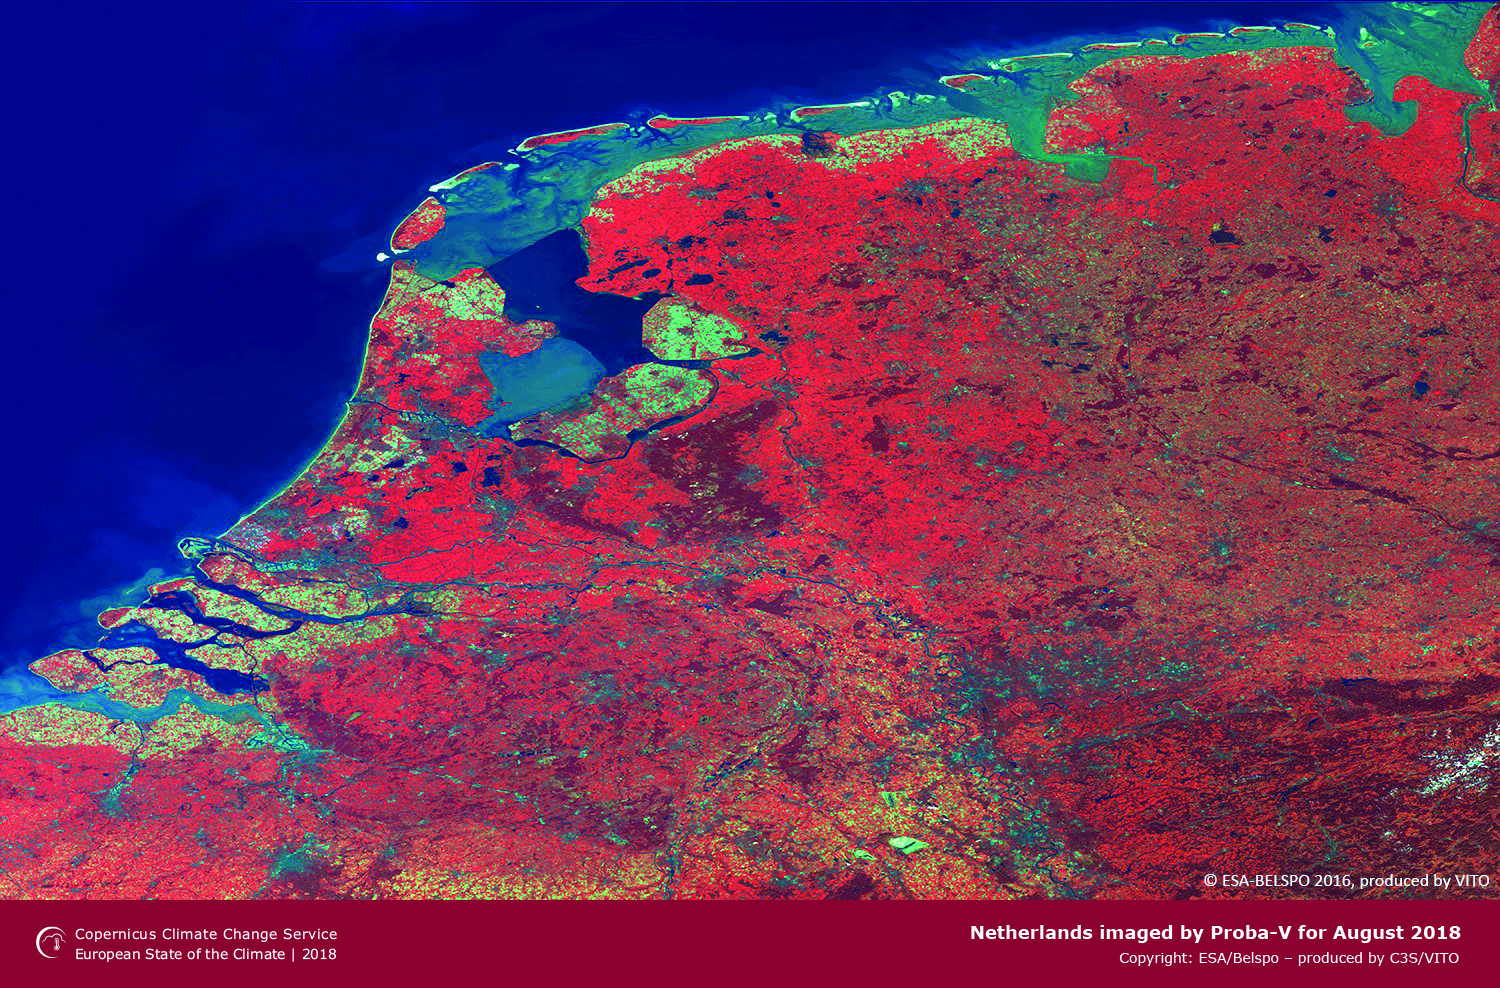 photo: ESA/Bespo;desc: Netherlands imaged by Proba-V for August 2018.